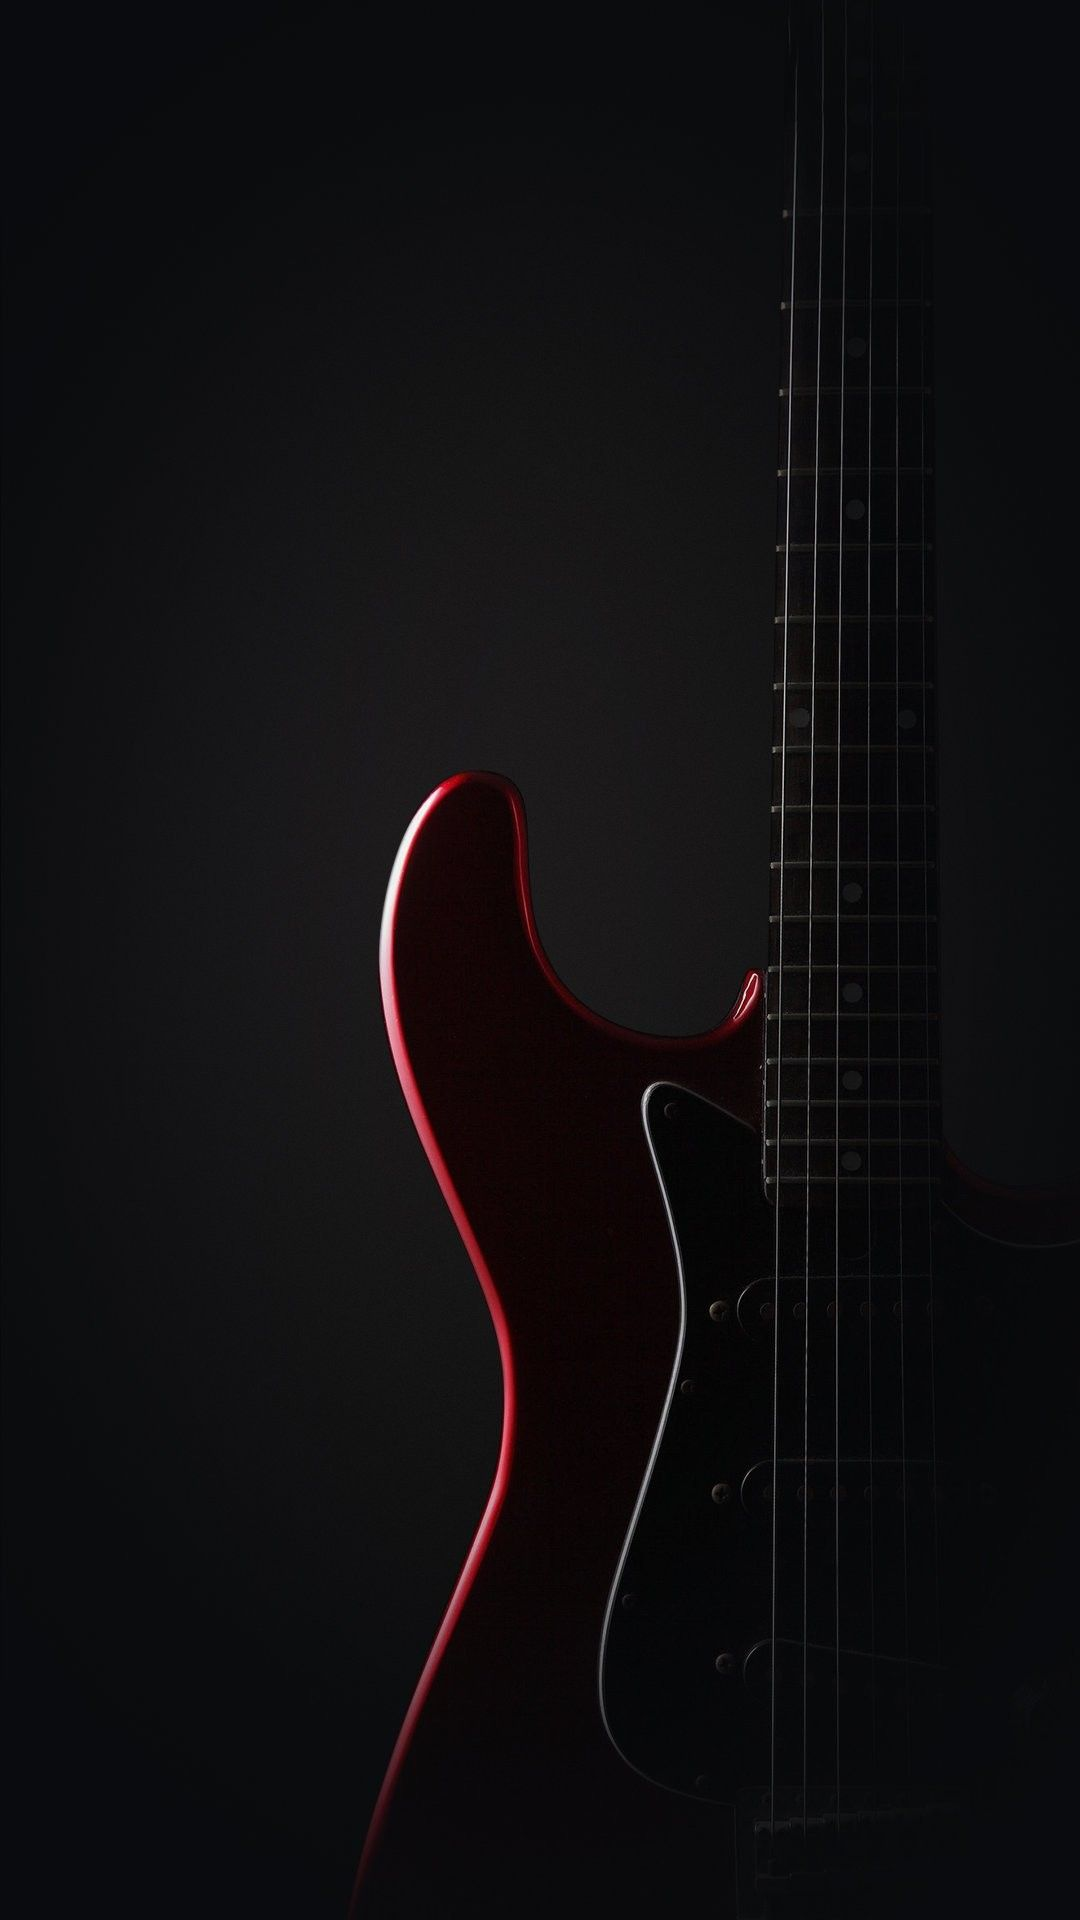 65 Music Wallpaper Backgrounds Android Iphone Desktop Hd Backgrounds Wallpapers 1080p 4k 1080x1920 2020